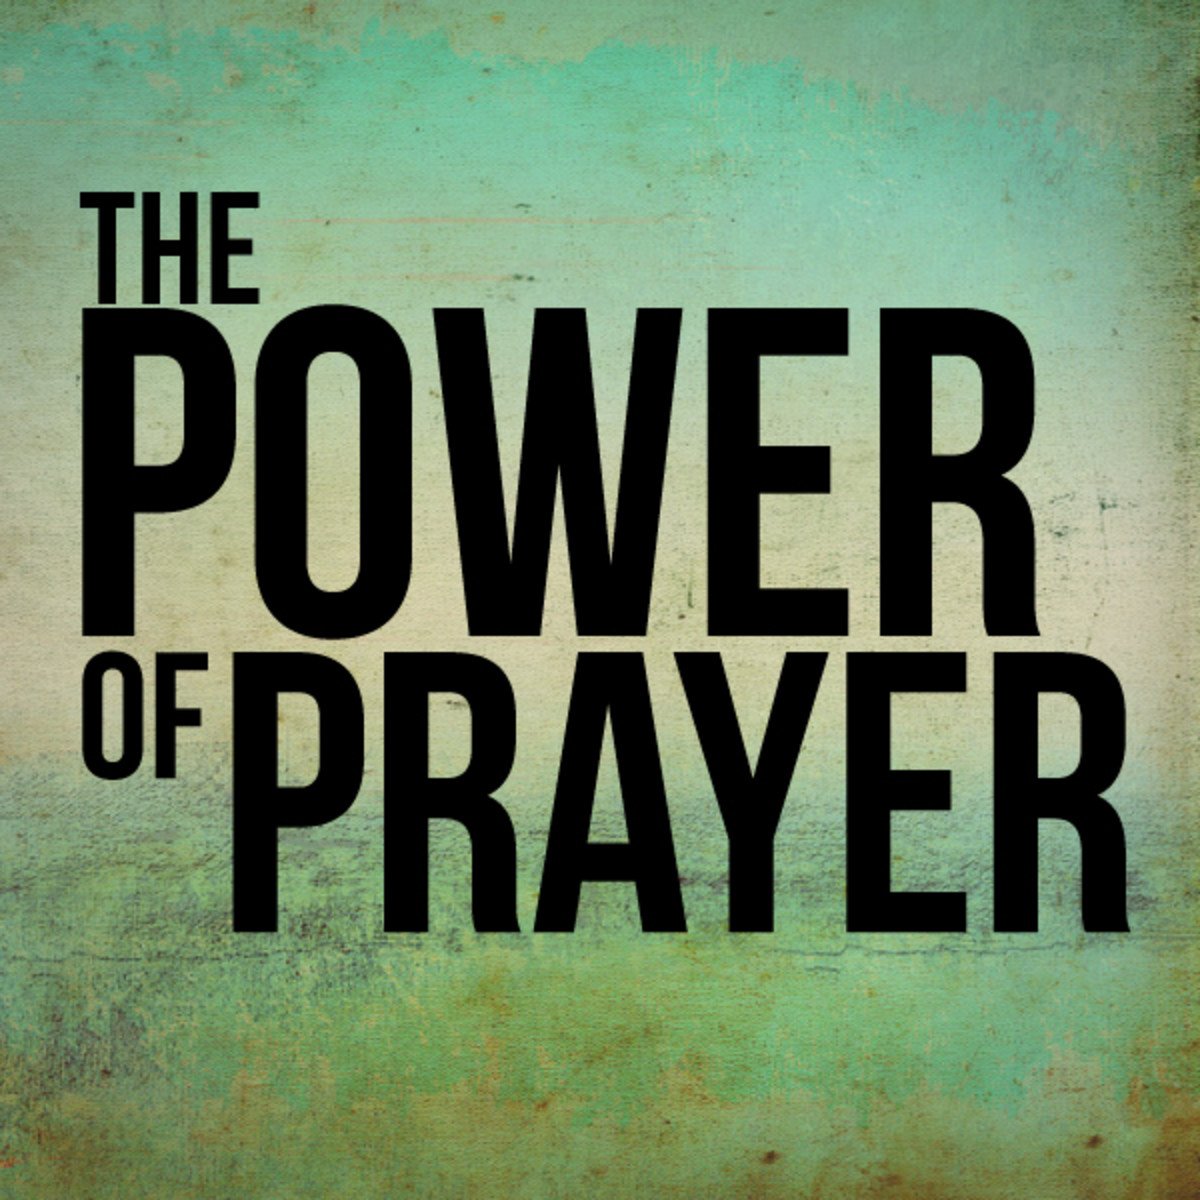 There is power in prayer.